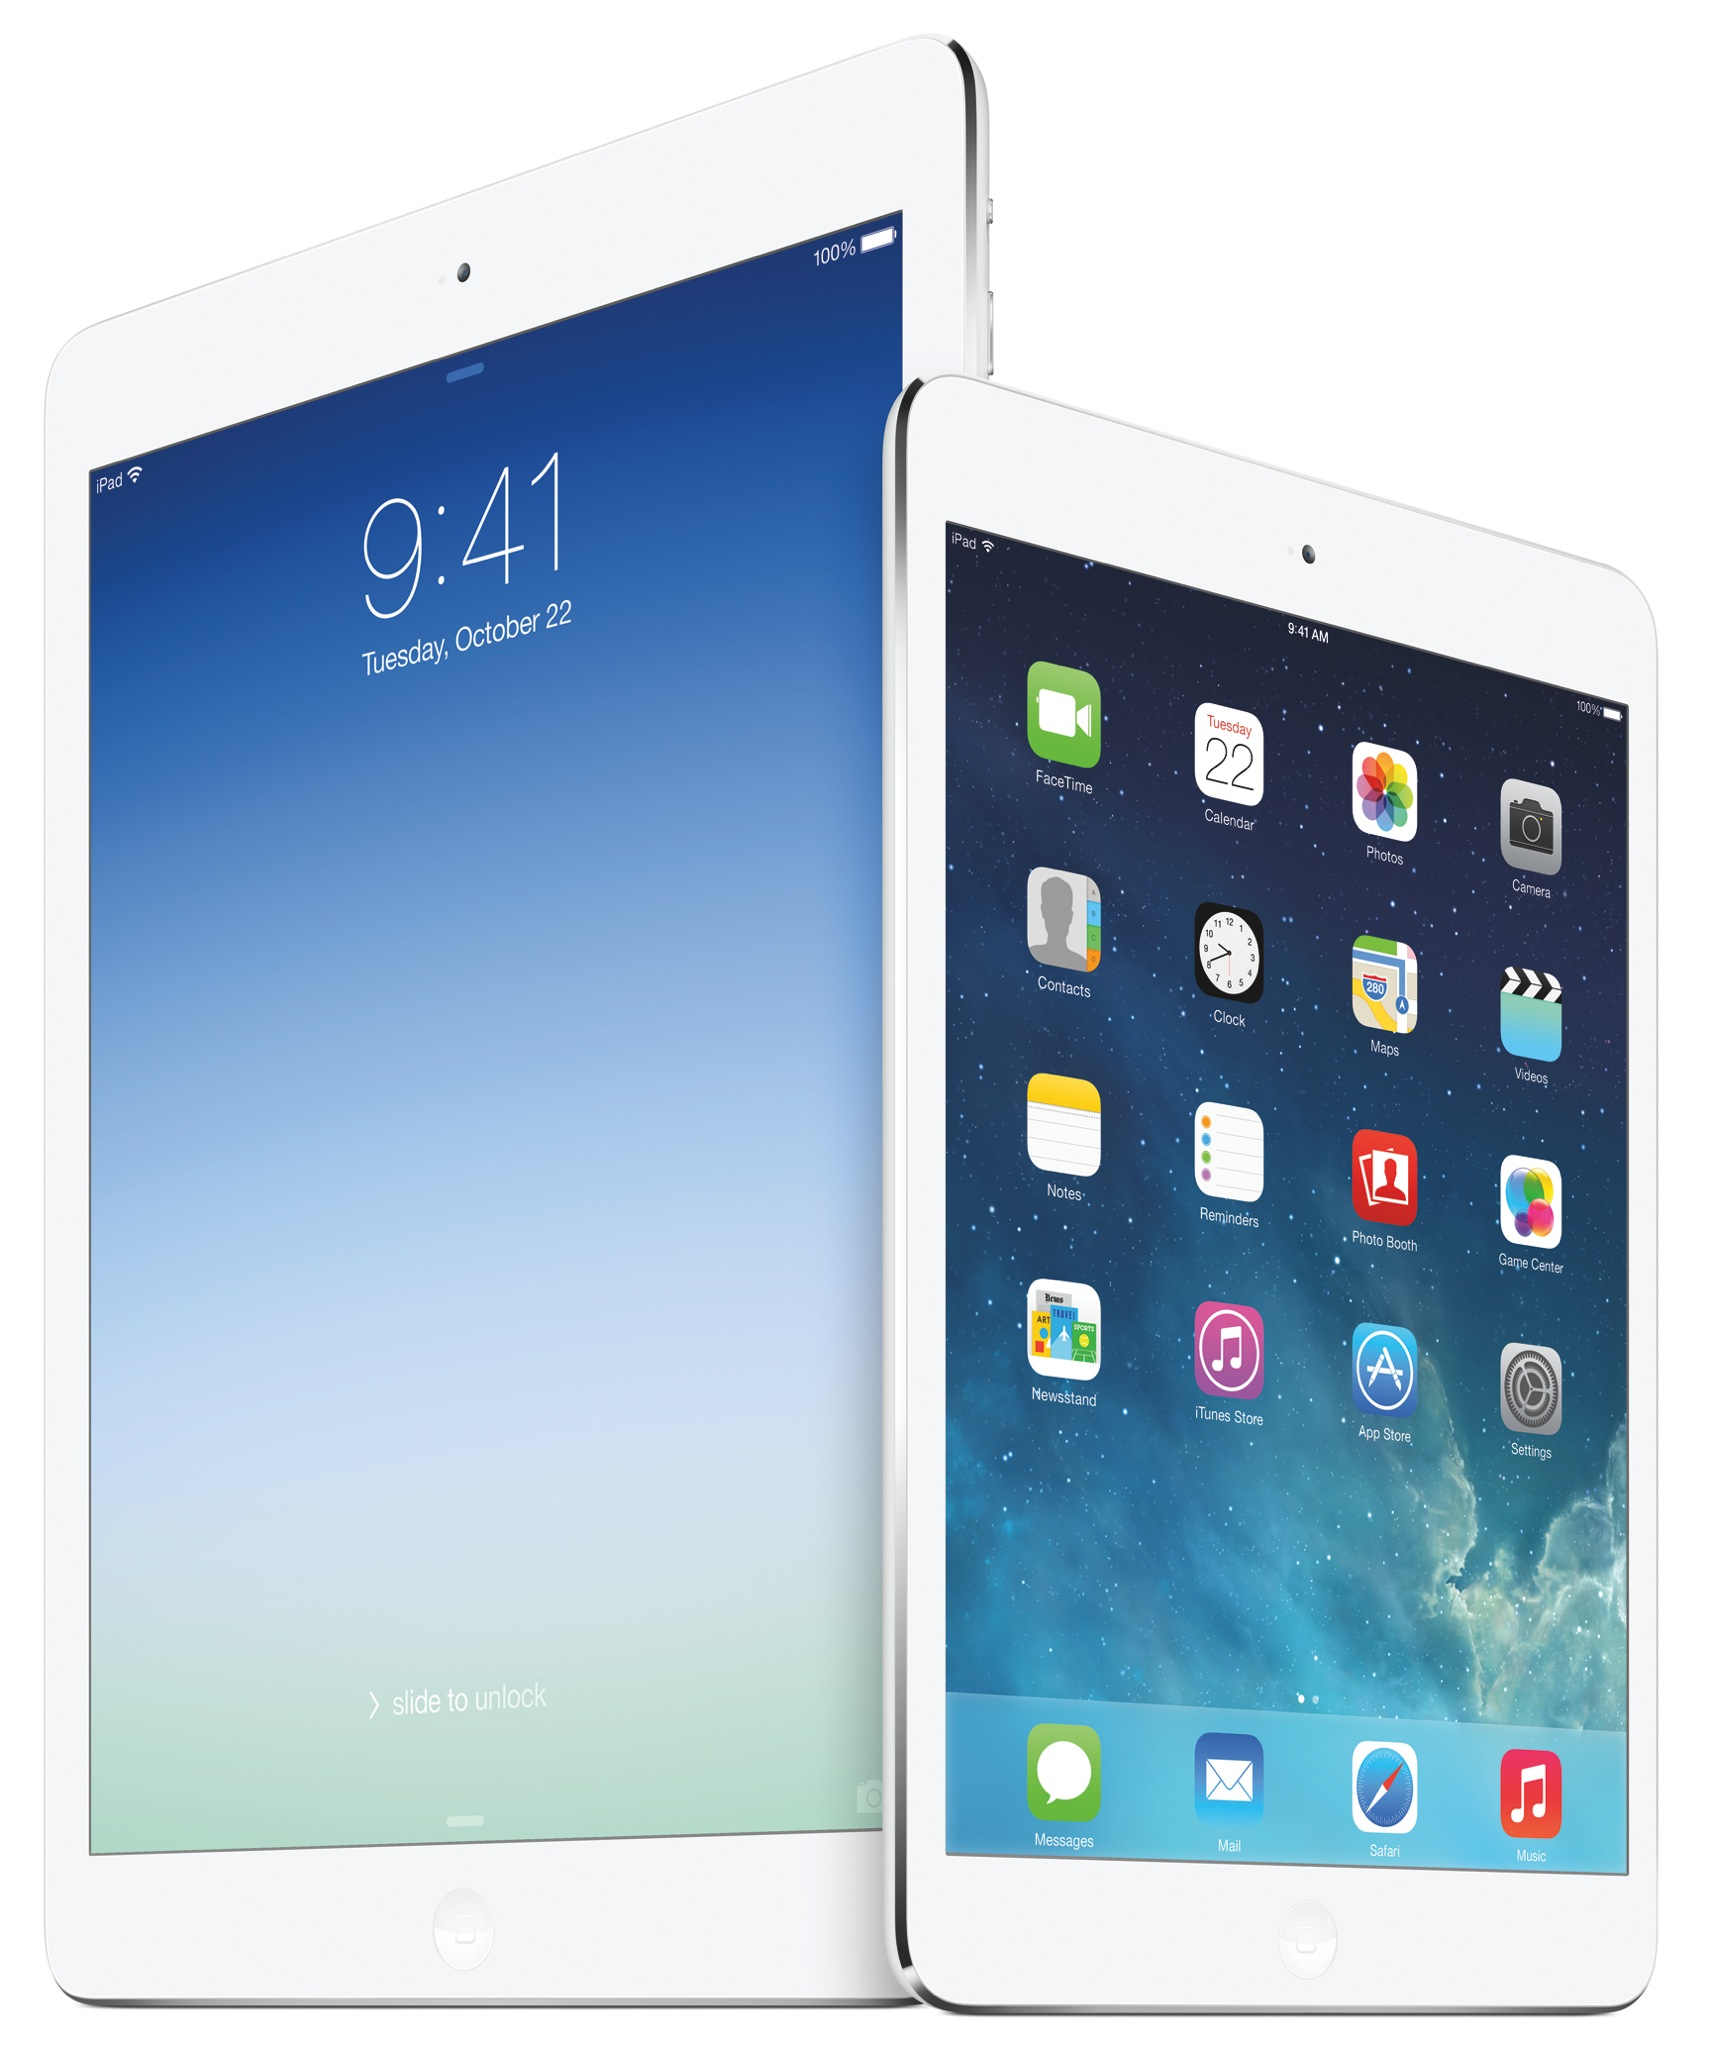 2013 iPad family (Retina iPad mini 2, iPad Air)